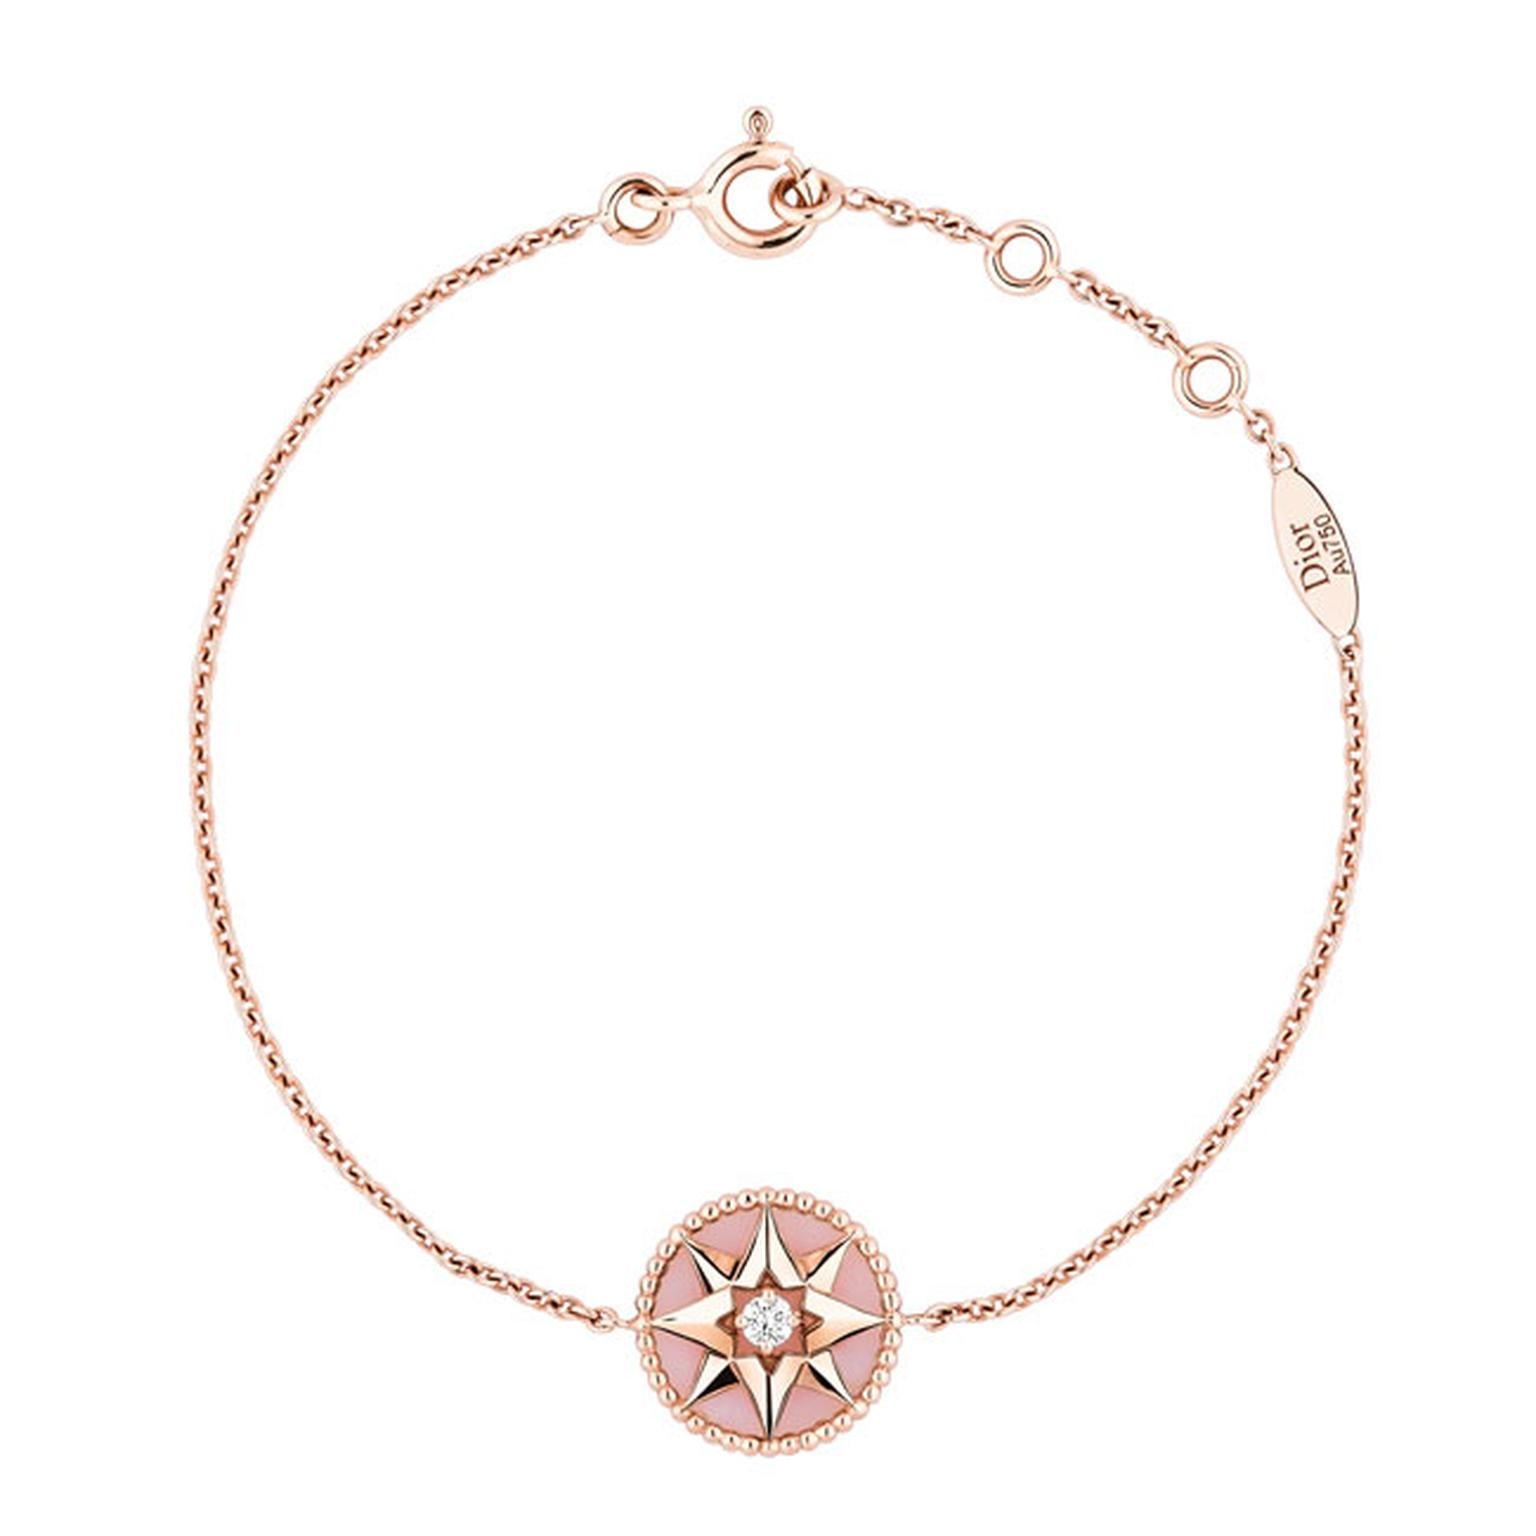 Dior Rose Des Vents pink gold pink opal and diamond bracelet_main